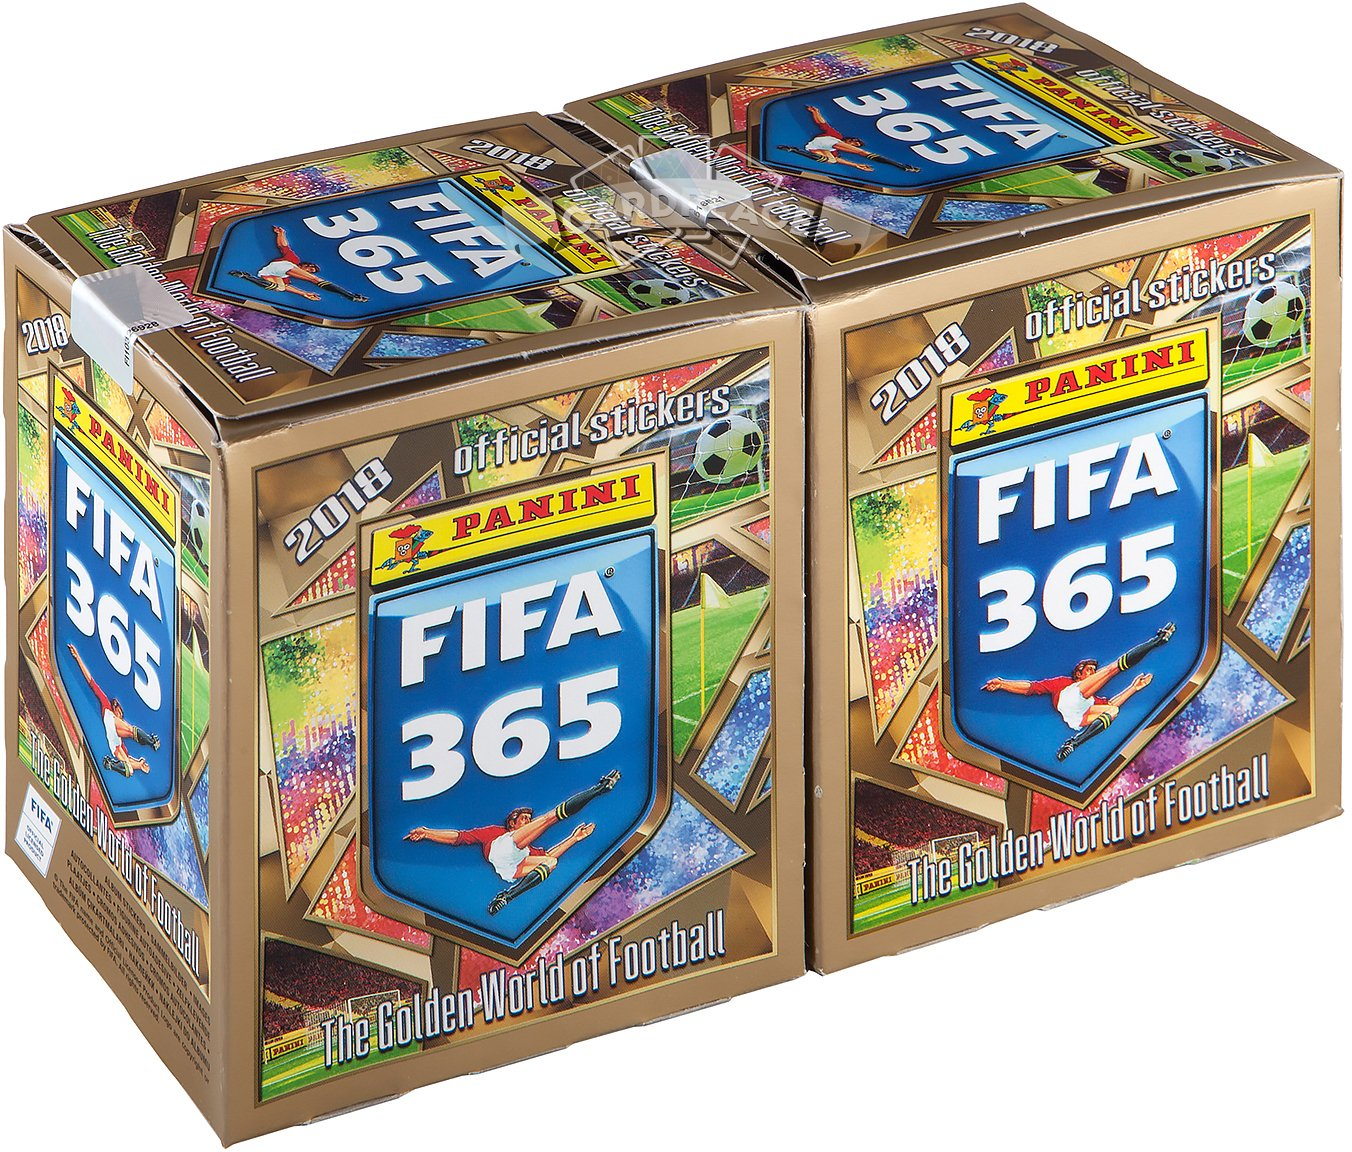 2017 Panini FIFA 365 2018 soccer stickers 2 sealed box (100 packs - 500 stickers)